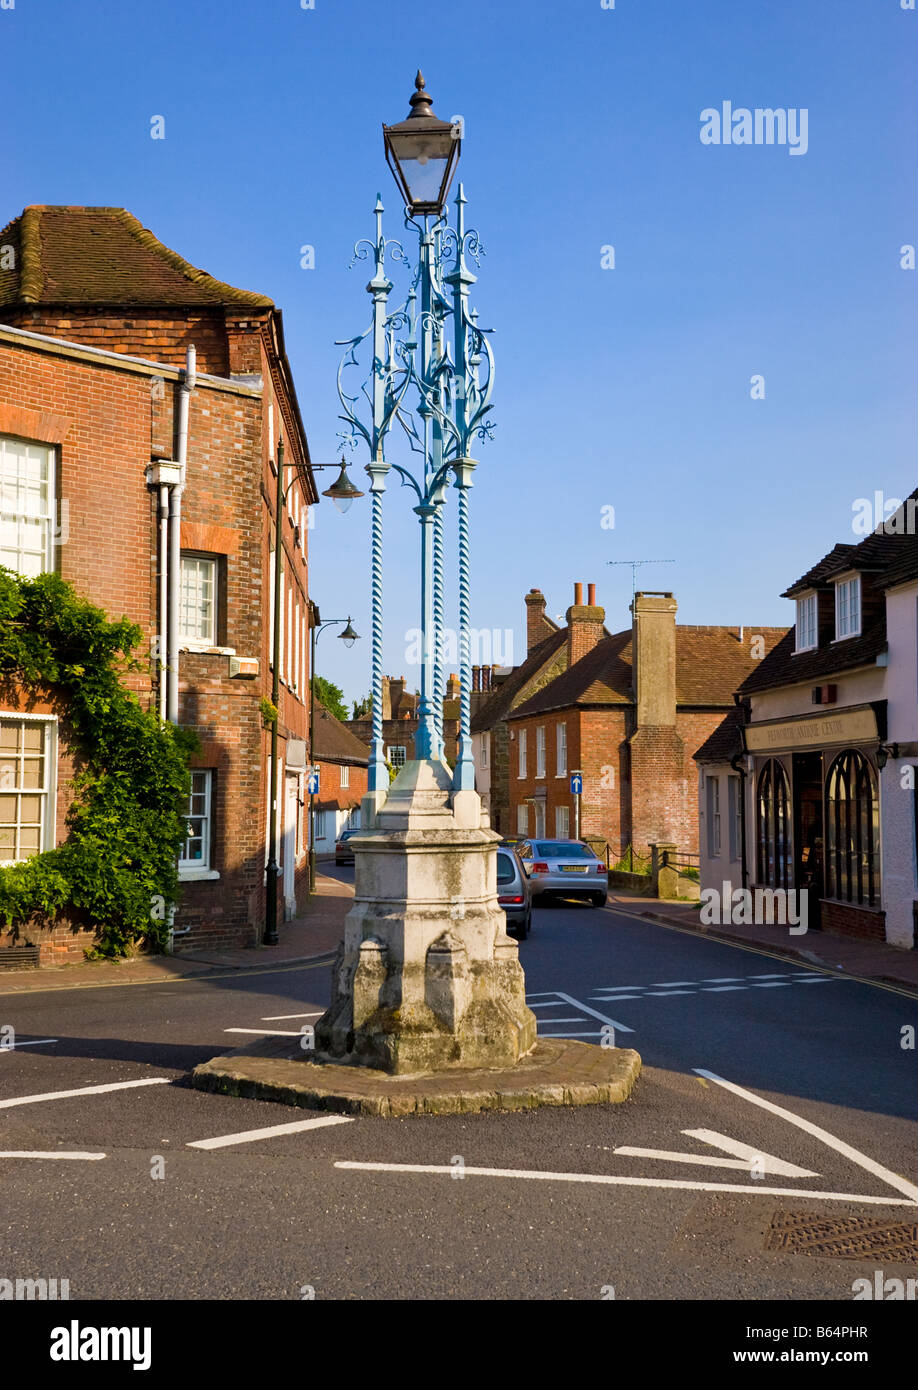 Lord Leconfield Gas light monument Petworth West Sussex England UK - Stock Image